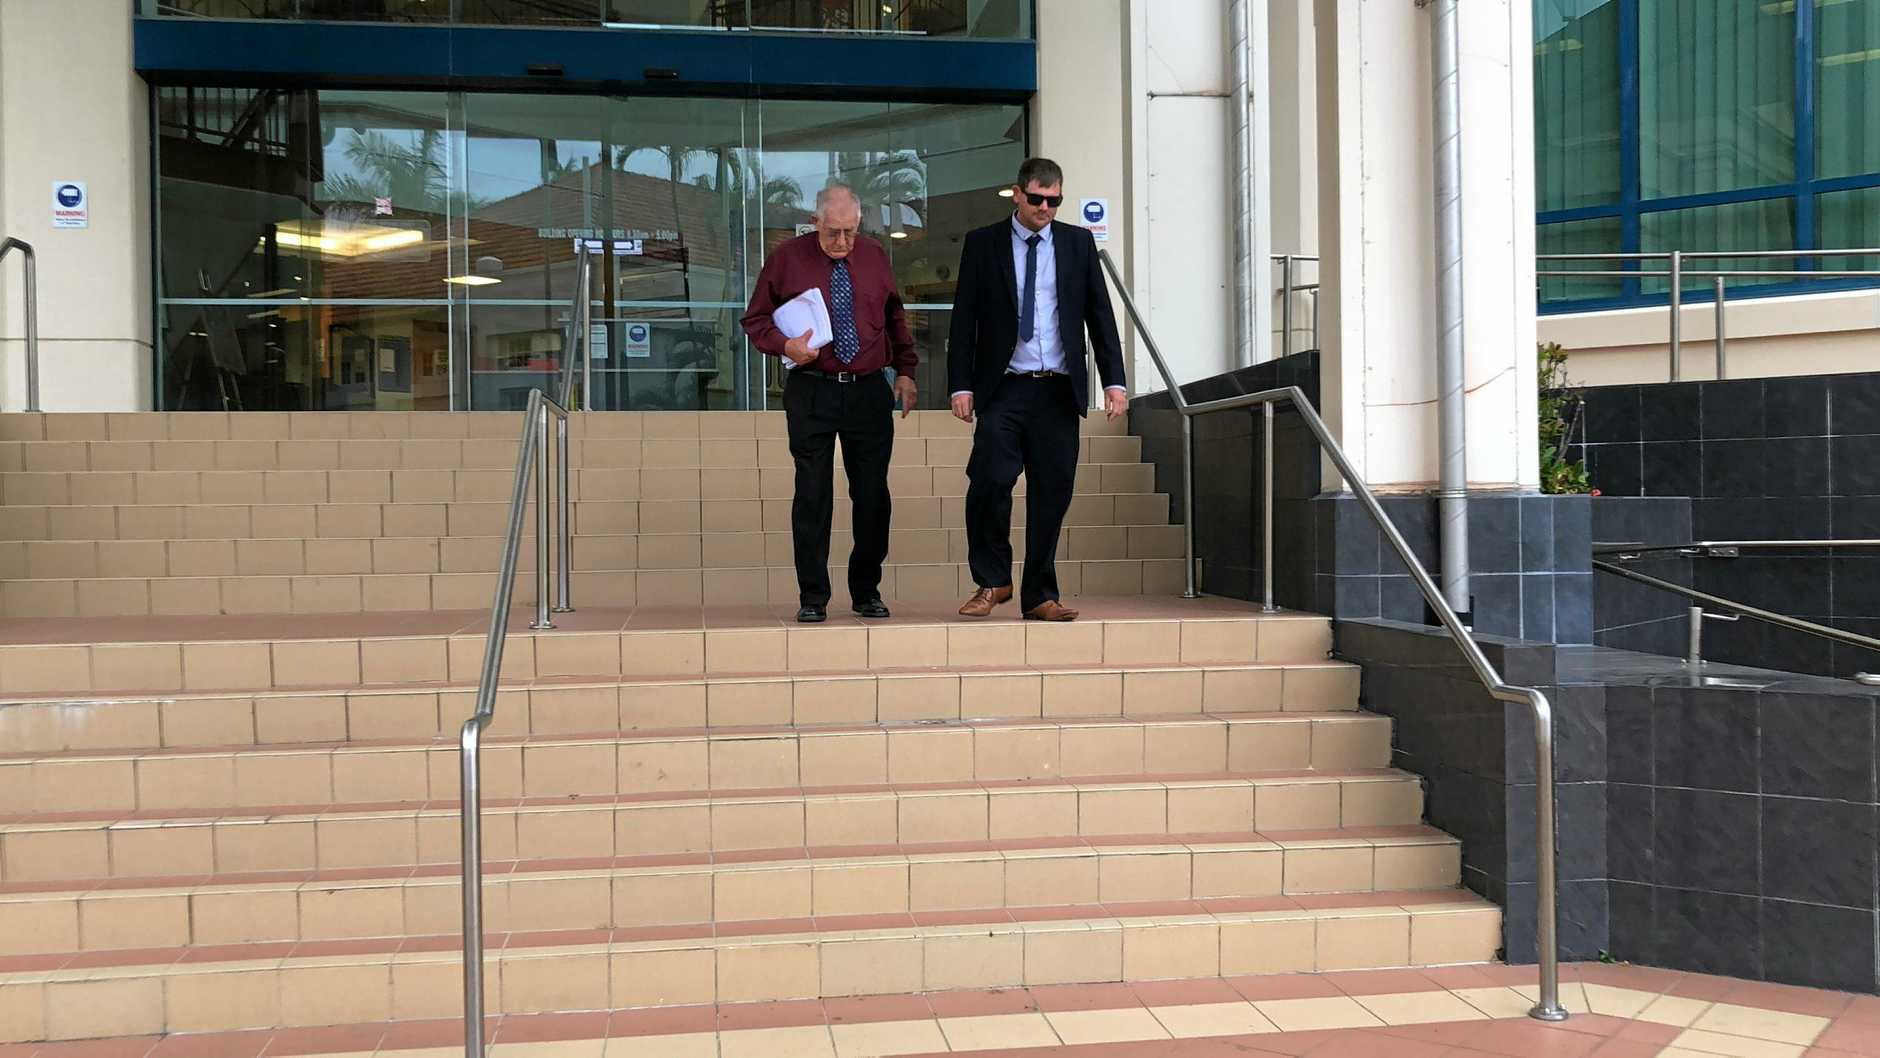 Former director of Leucaena Chop Pty Ltd David Alsop and the now director and his son Sam Alsop leaving Rockhampton Magistrates Court after Leucaena Chop was fined $104,000 for a workplace accident that changed a man's life catastrophically.